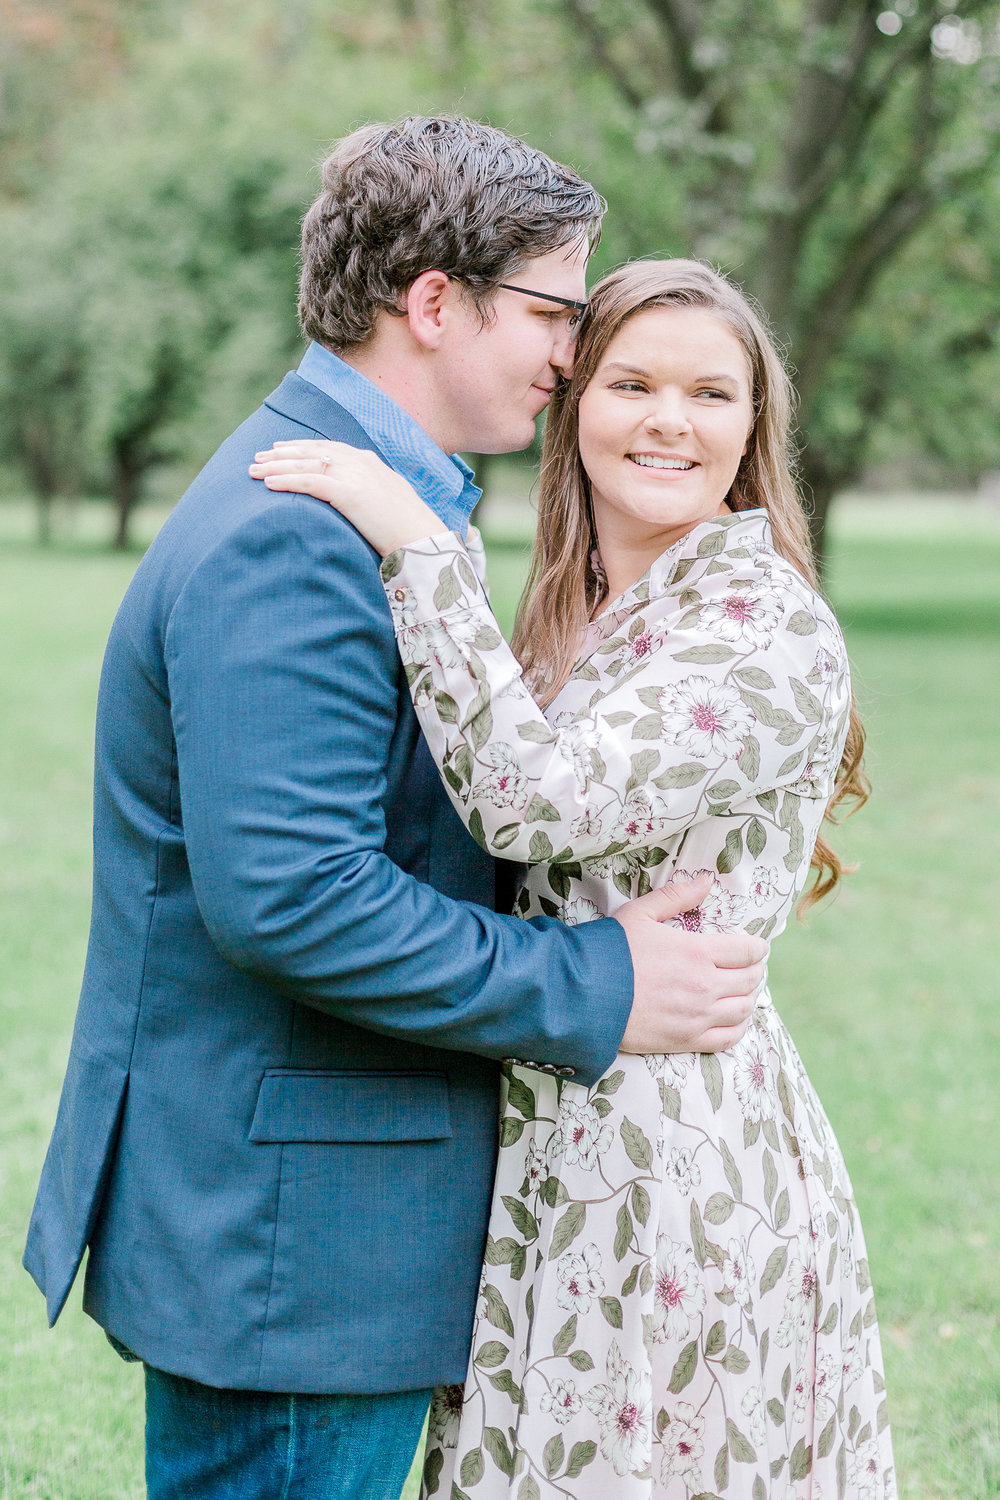 Lehigh valley Fish hatchery fall Engagement Session wedding and lifestyle photographer Lytle Photo Co (2 of 69).jpg